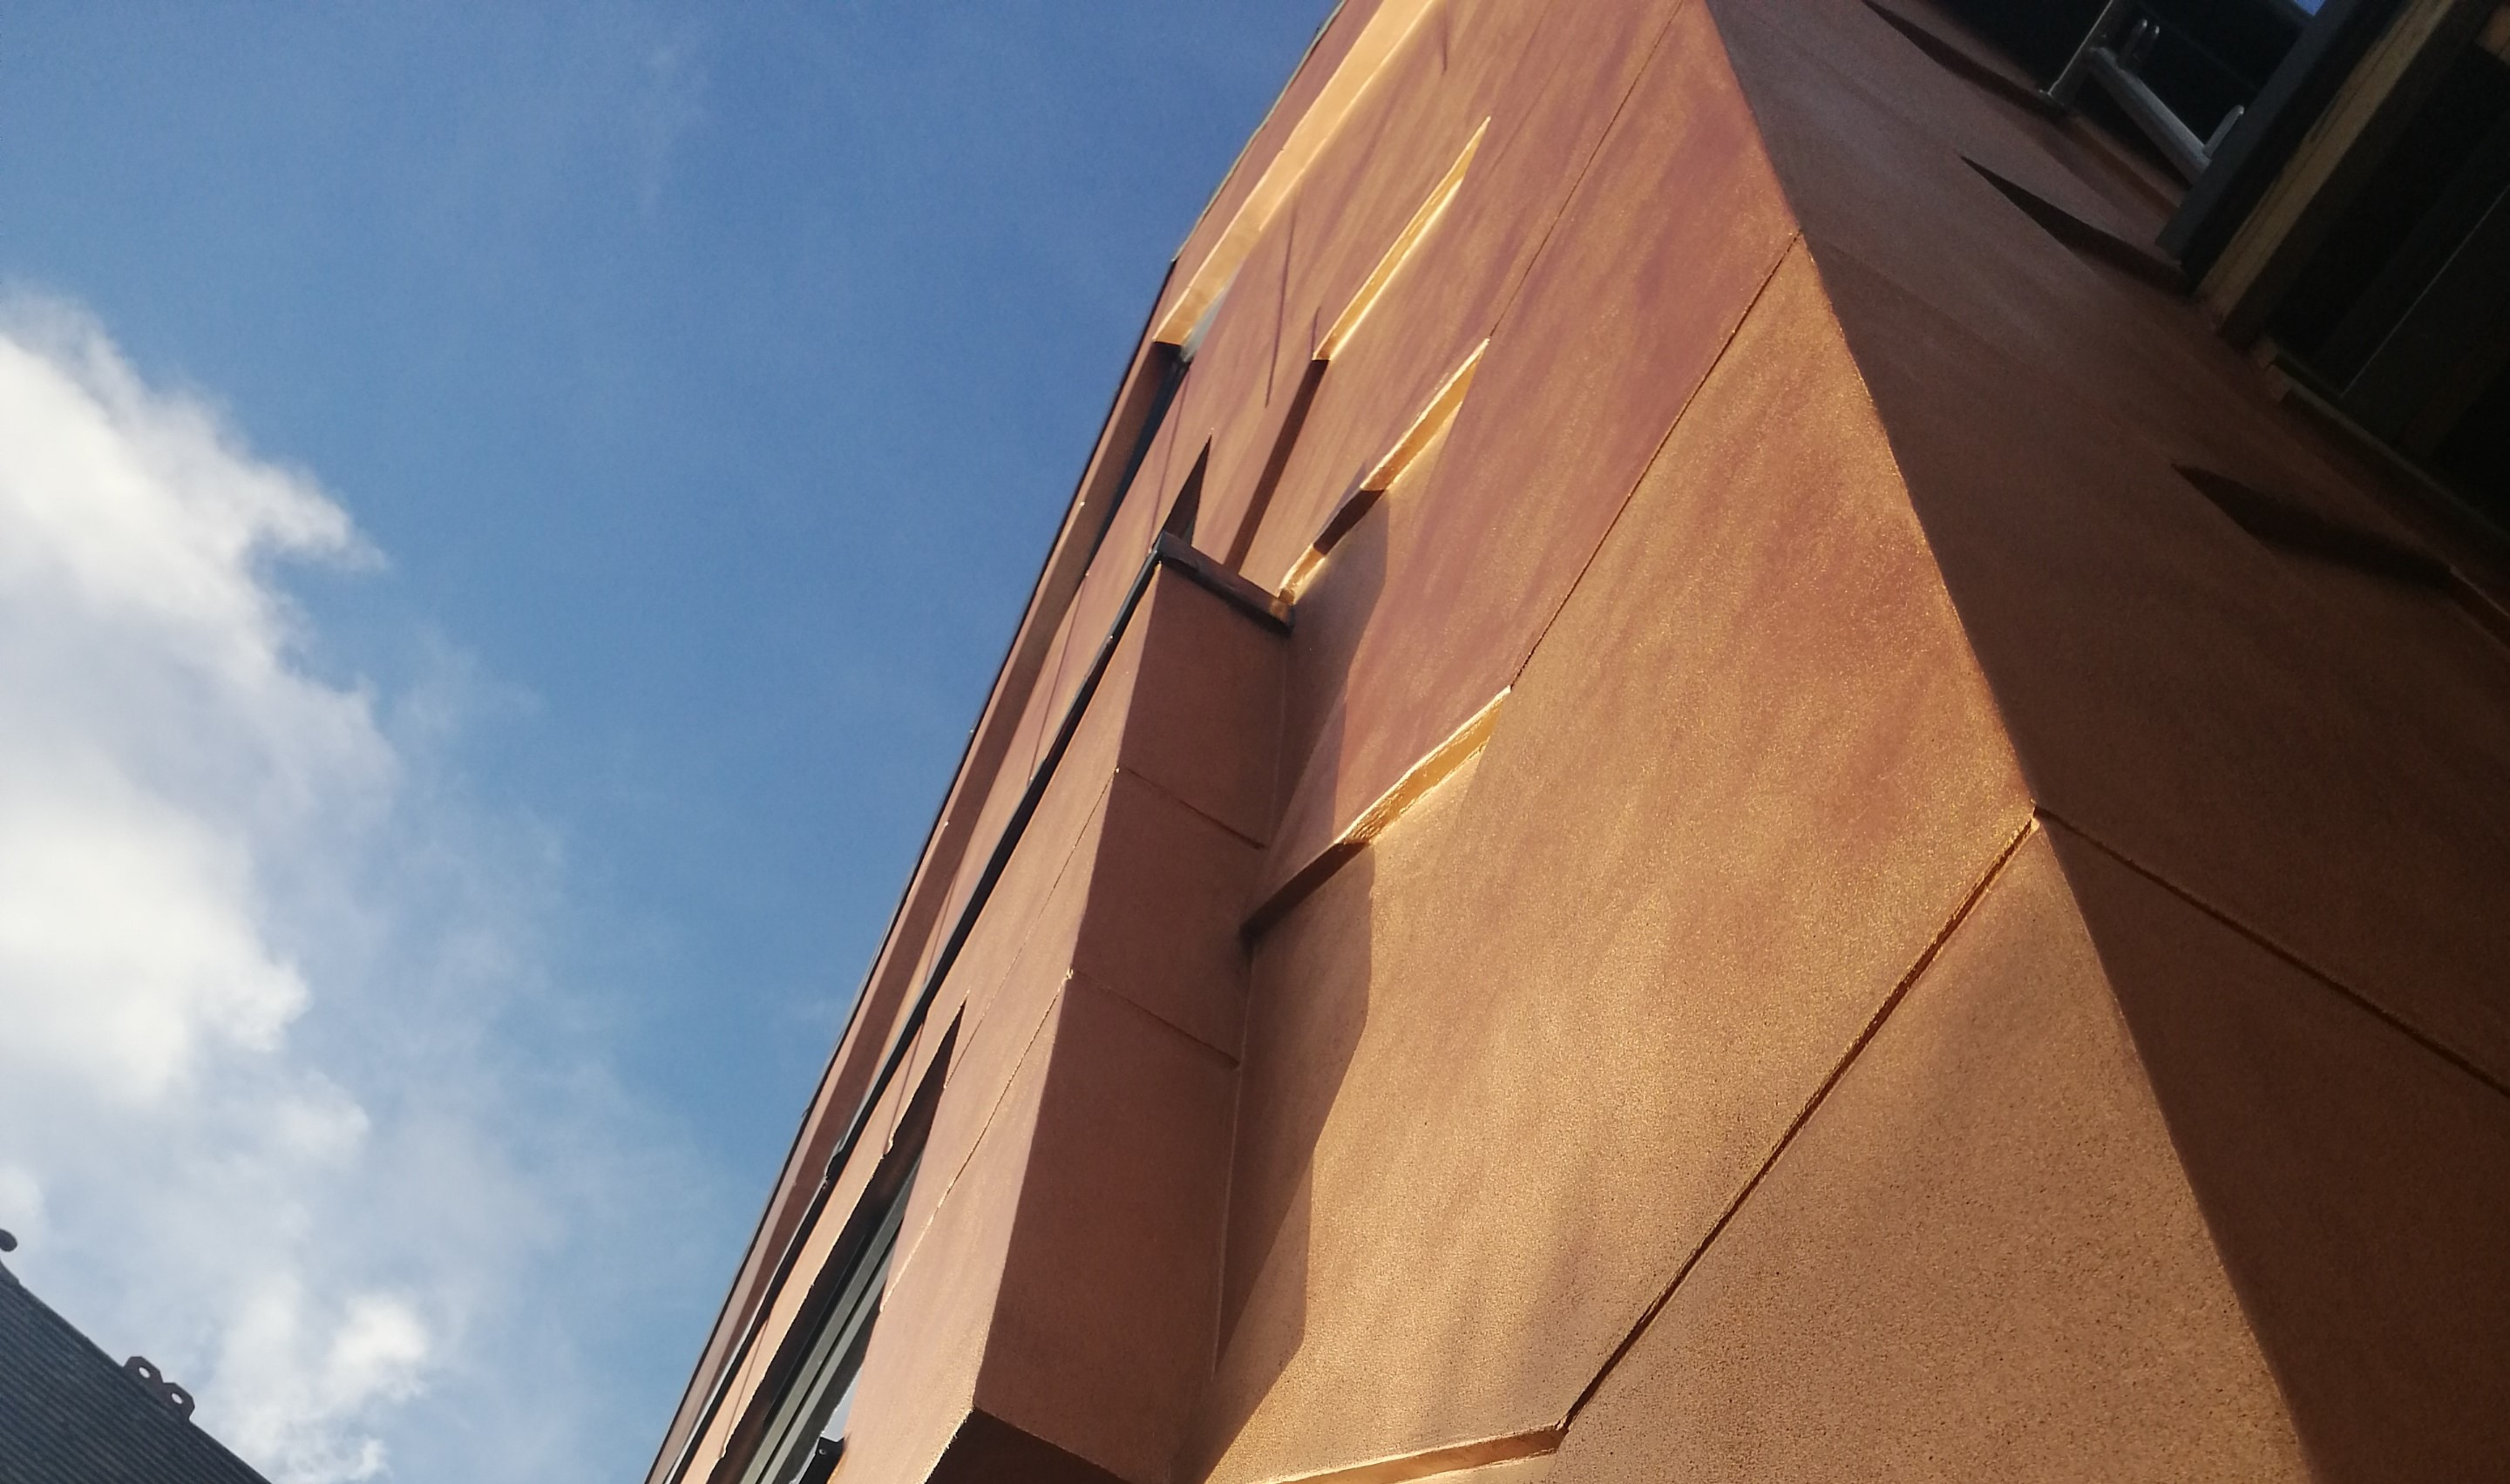 Project Feature: Baumit paint puts stunning bronze finish on gold-standard facade design